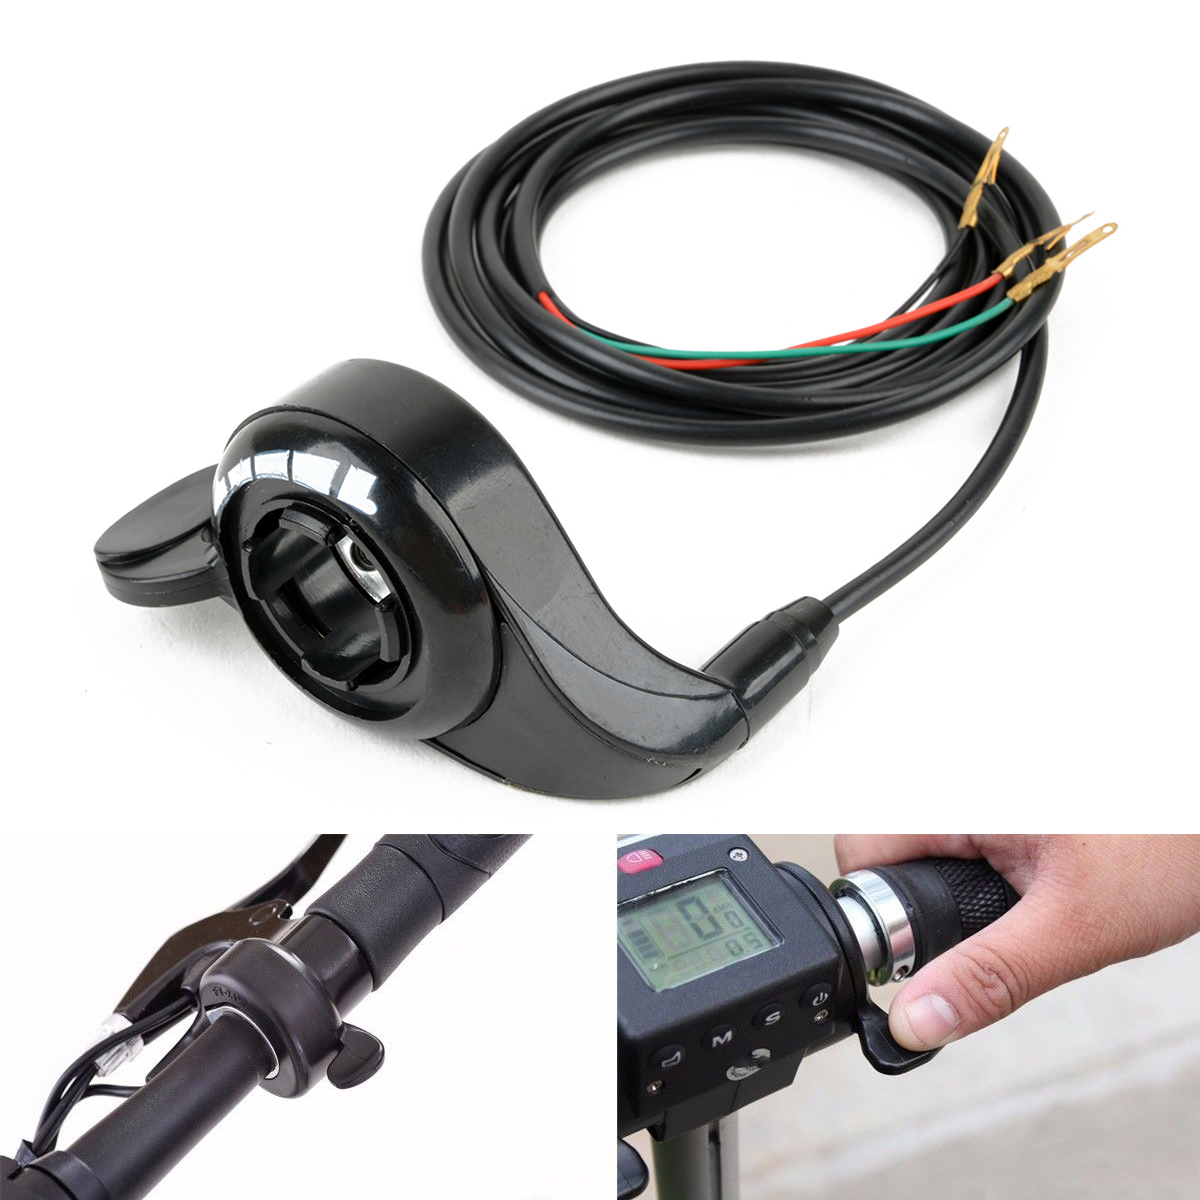 1*E-Bike Scooter Finger Speed Control Handle Thumb Modified Throttle